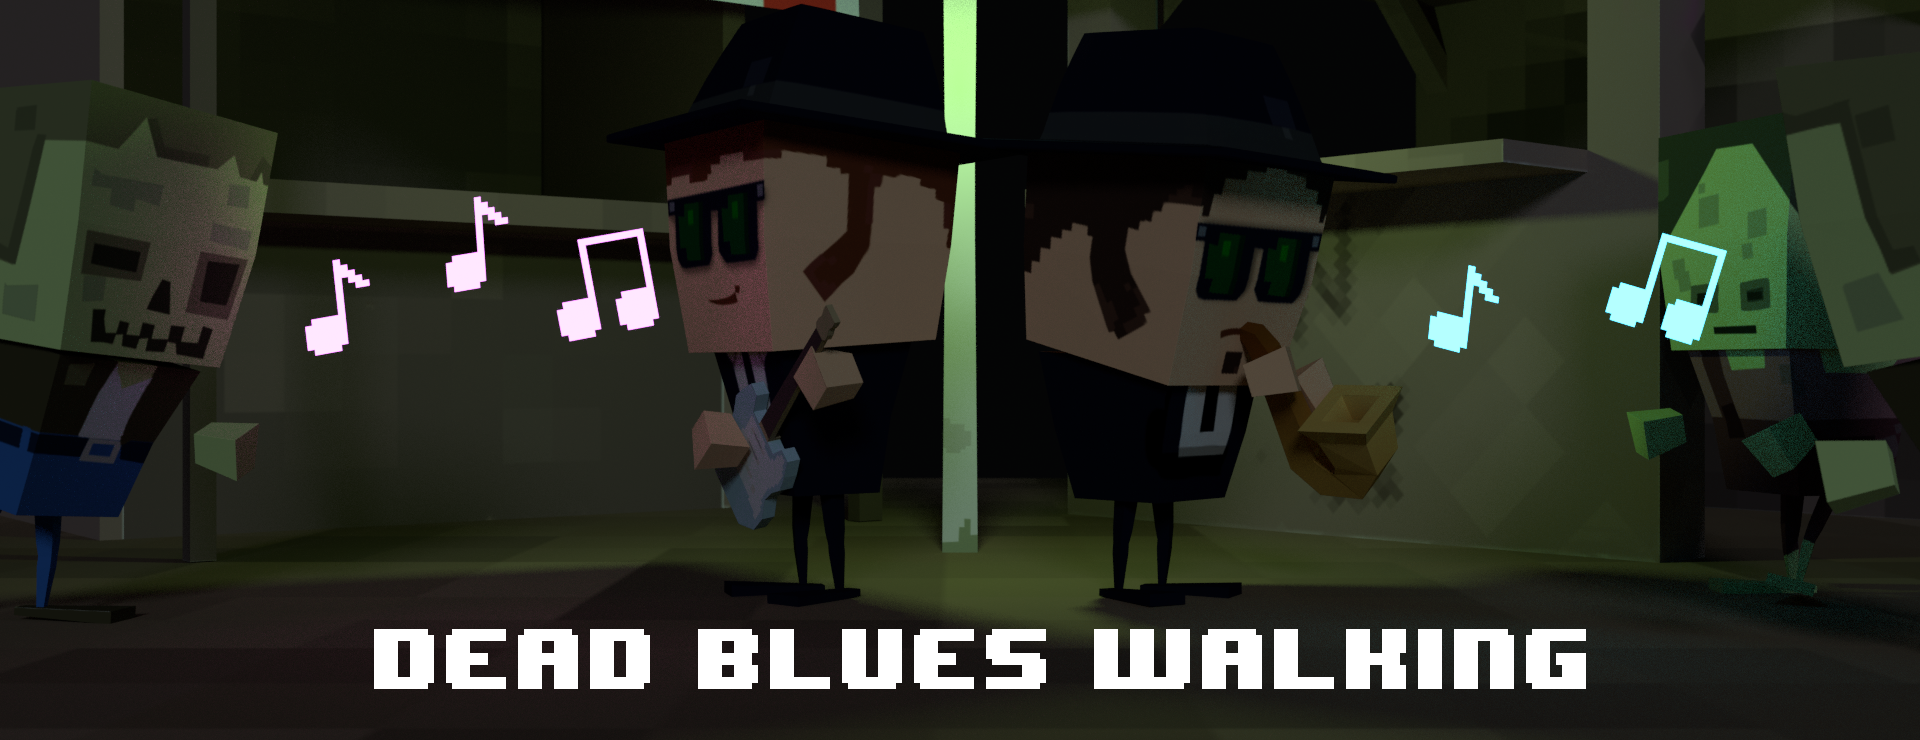 Dead Blues Walking